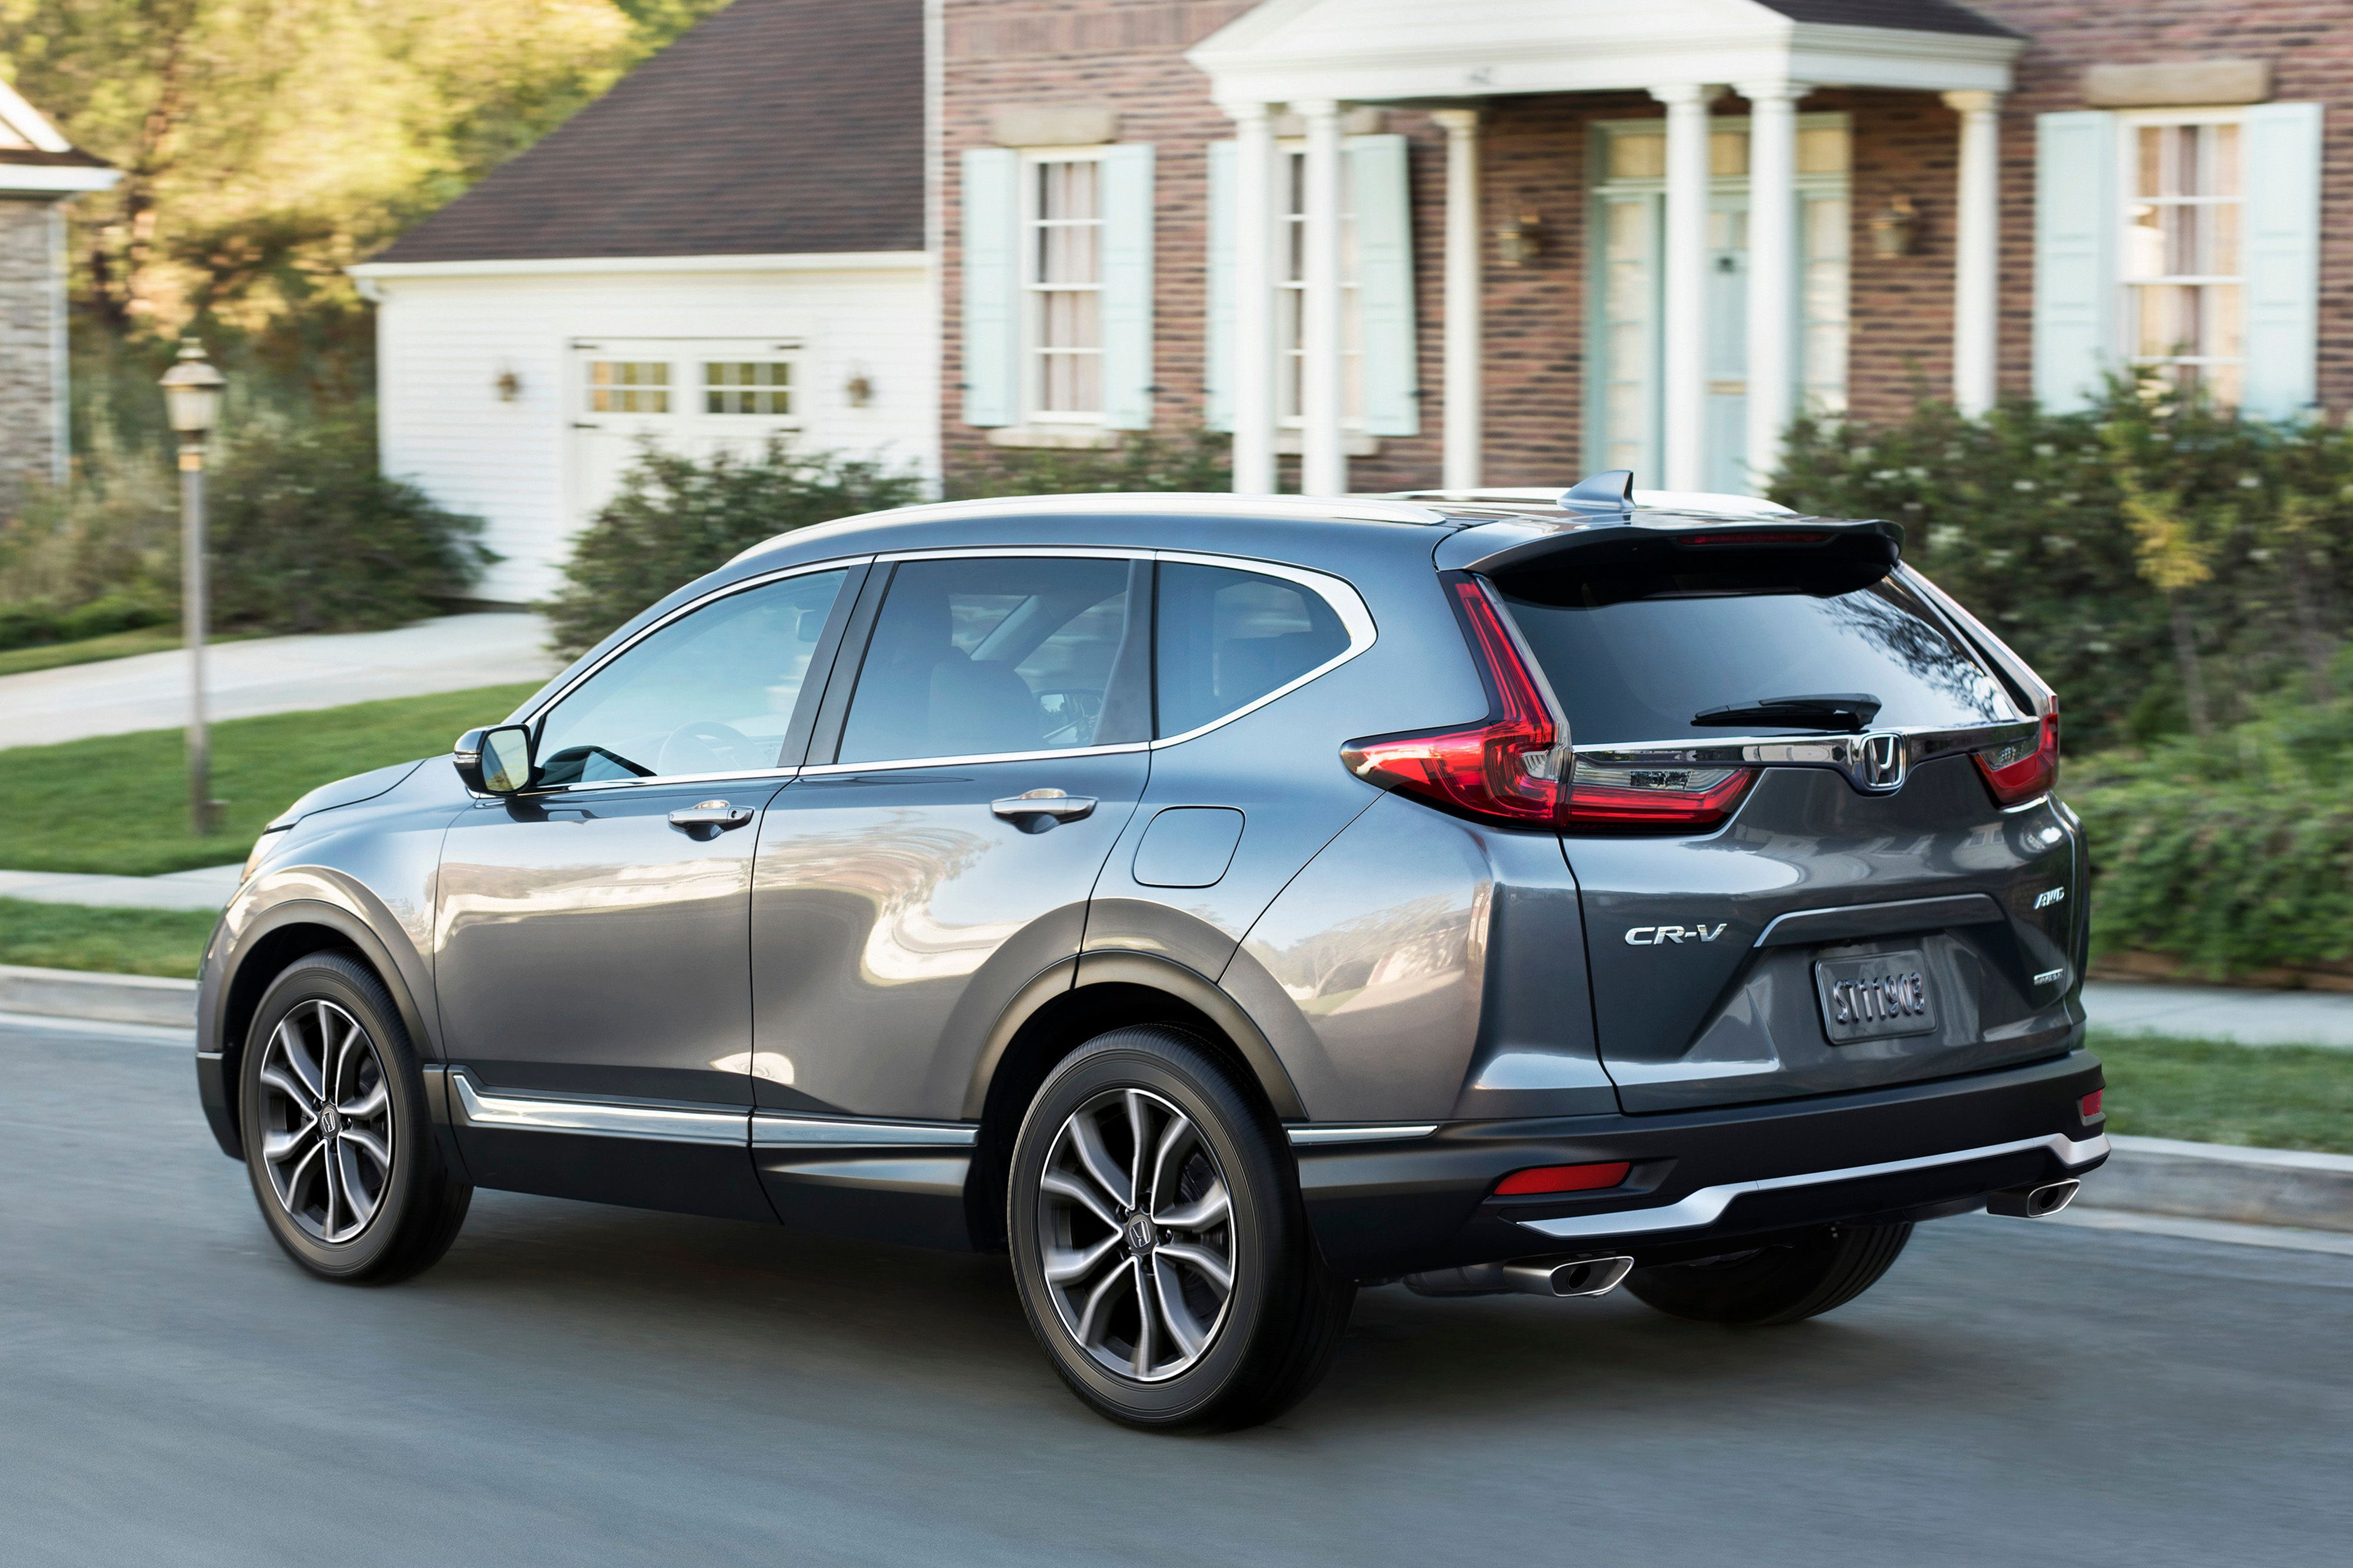 Honda crv which should you buy 2019 or 2020 news